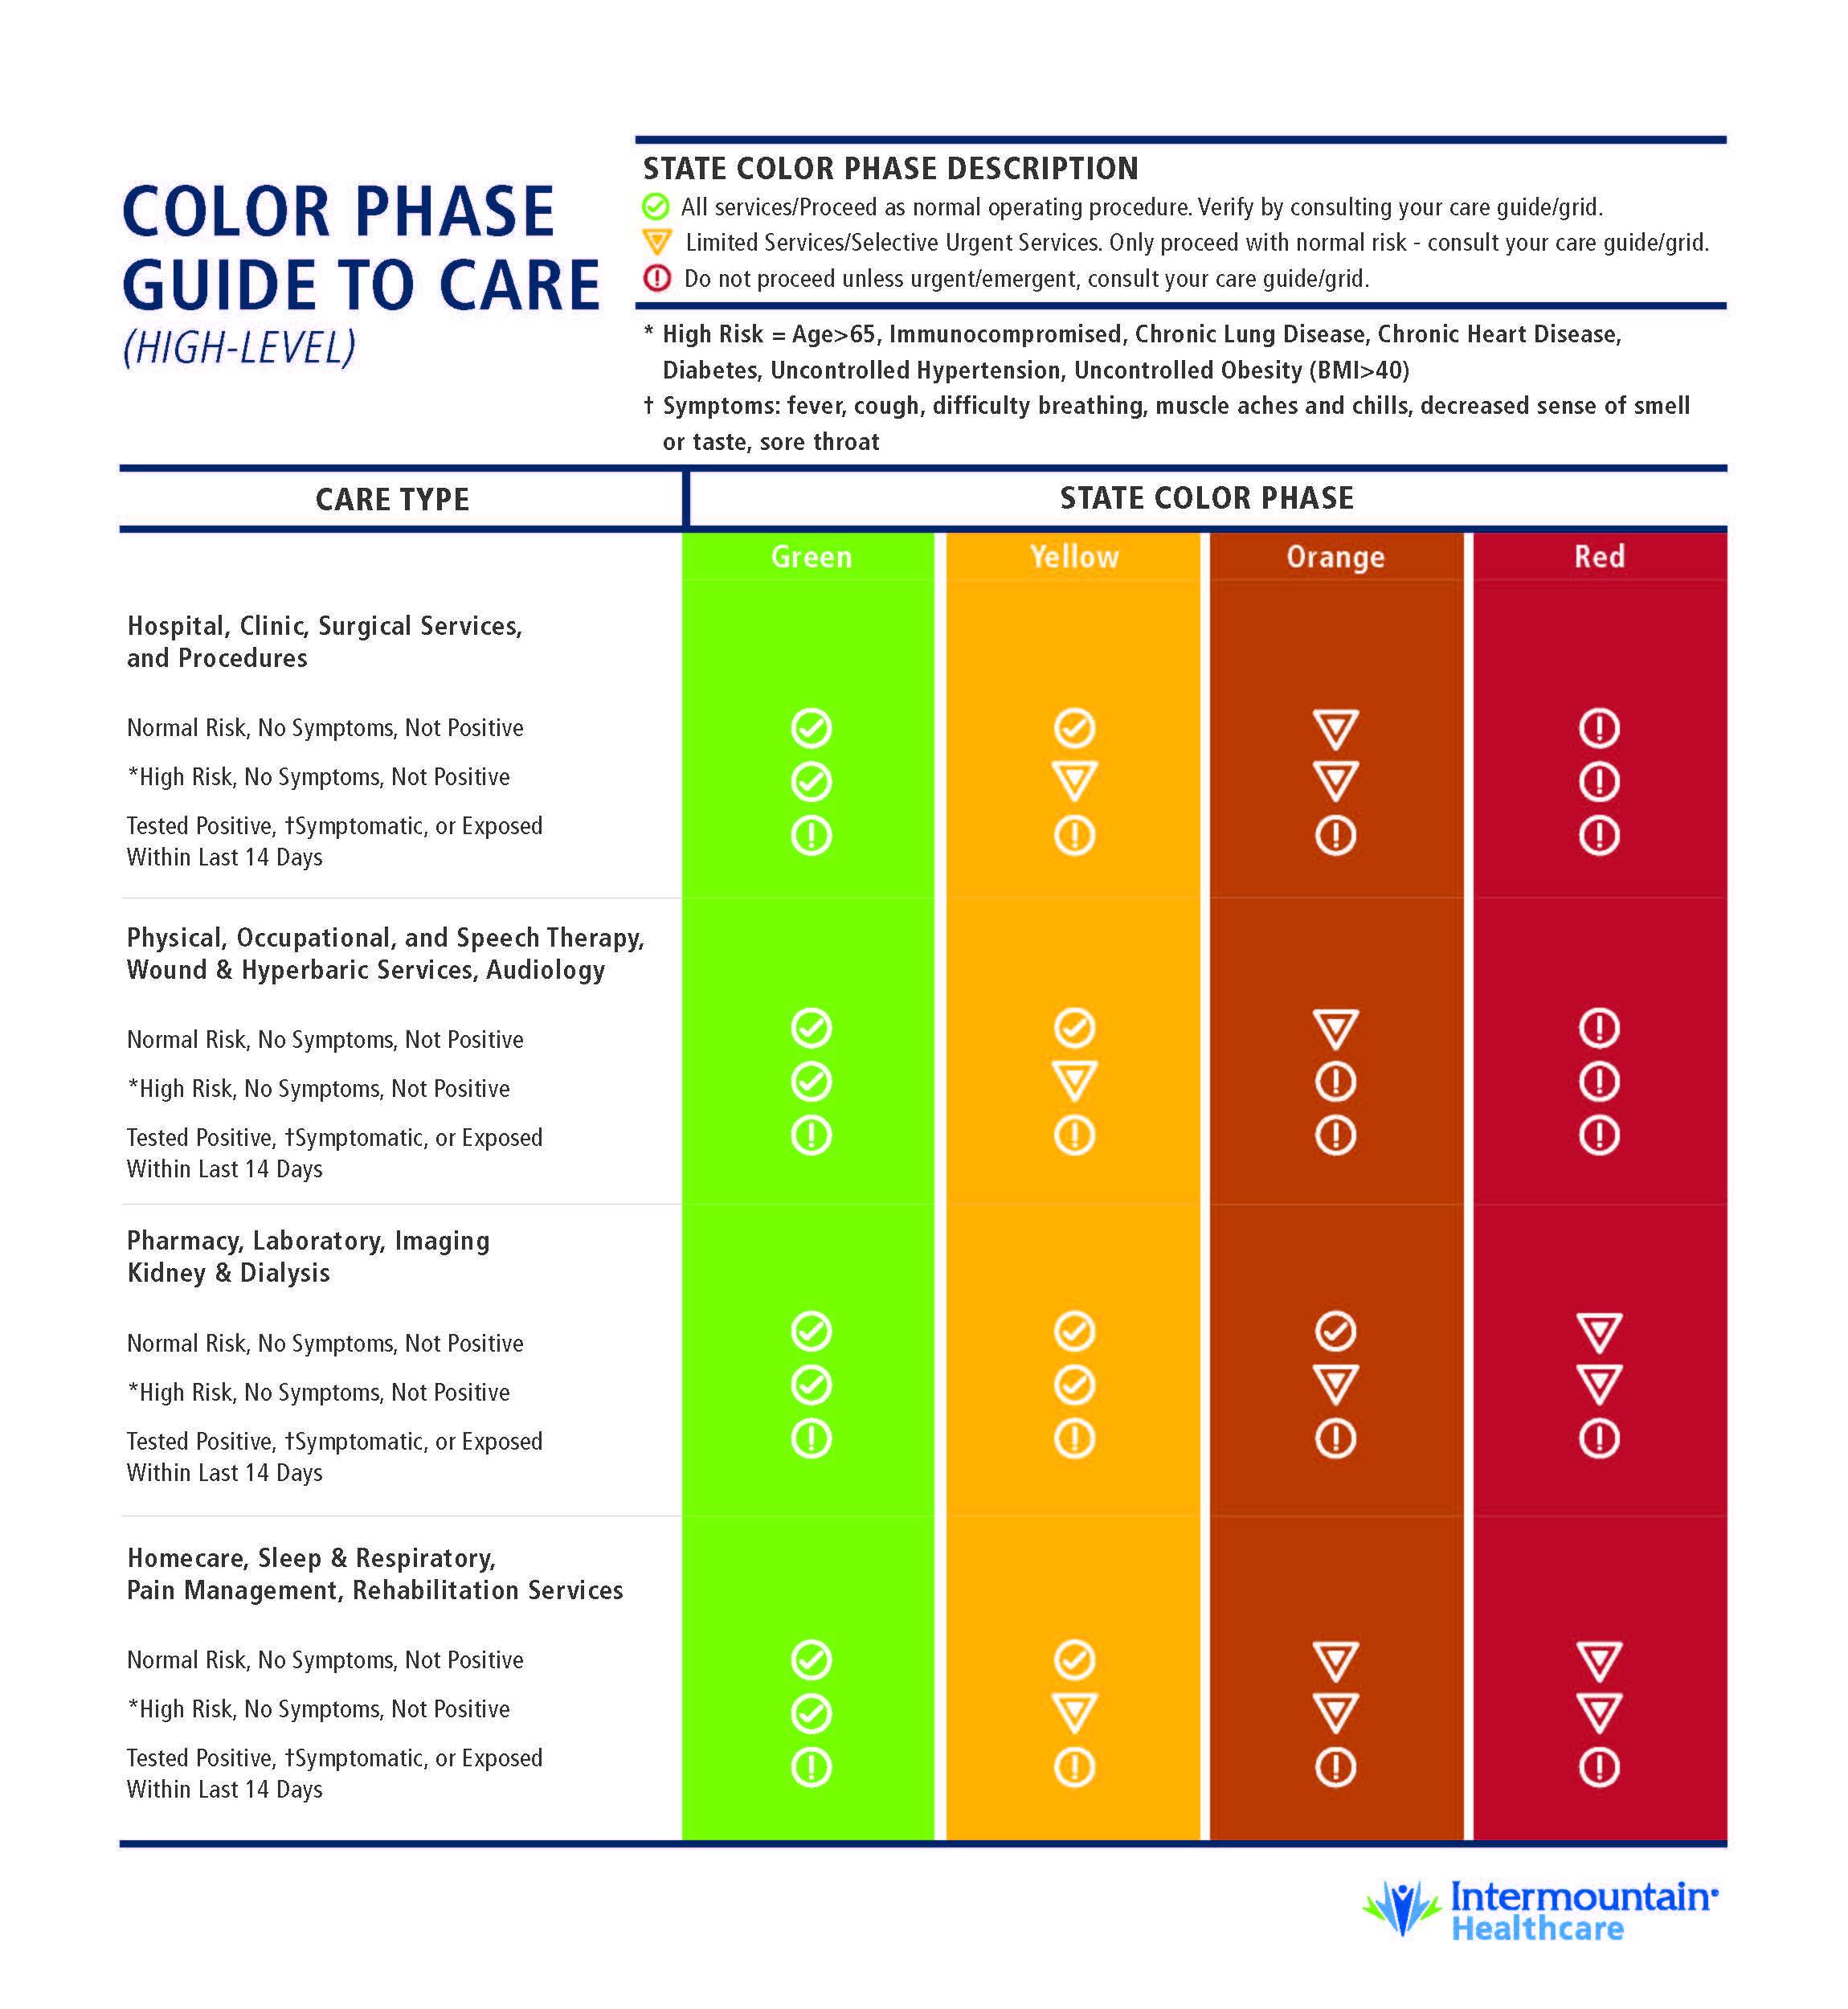 Clinical Care and Services Guidance for Patients During the 'Yellow' Phase